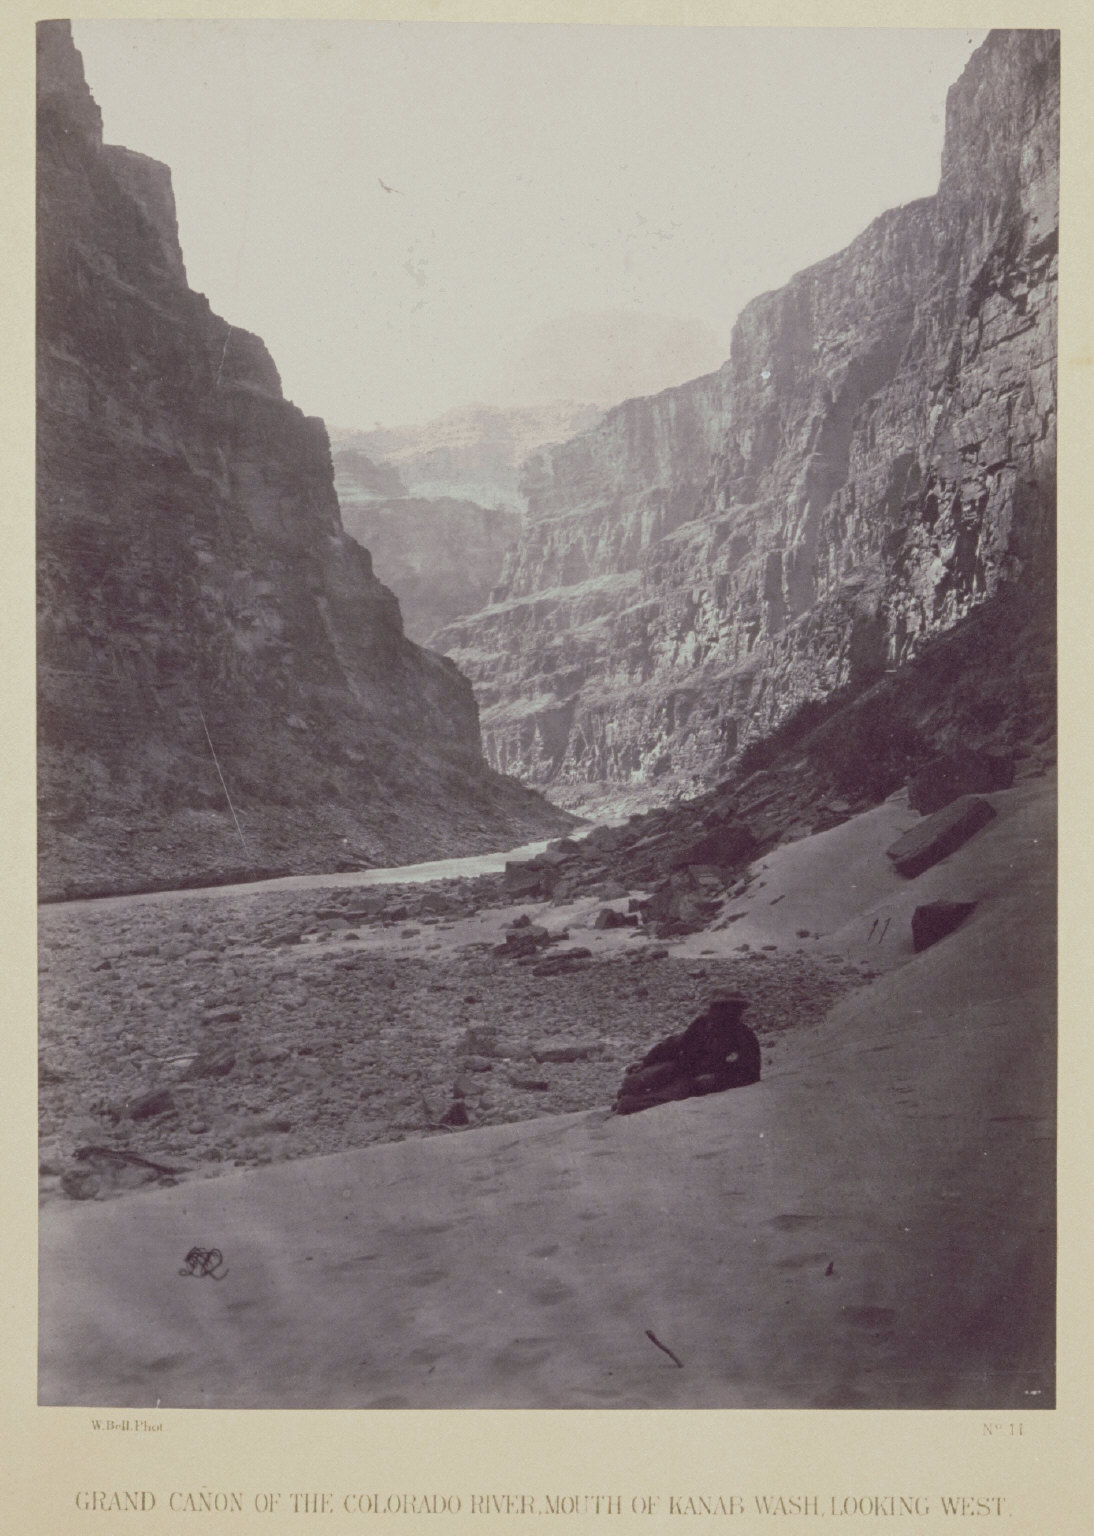 Grand Canon of the Colorado River, Mouth of Kanab Wash Looking West.